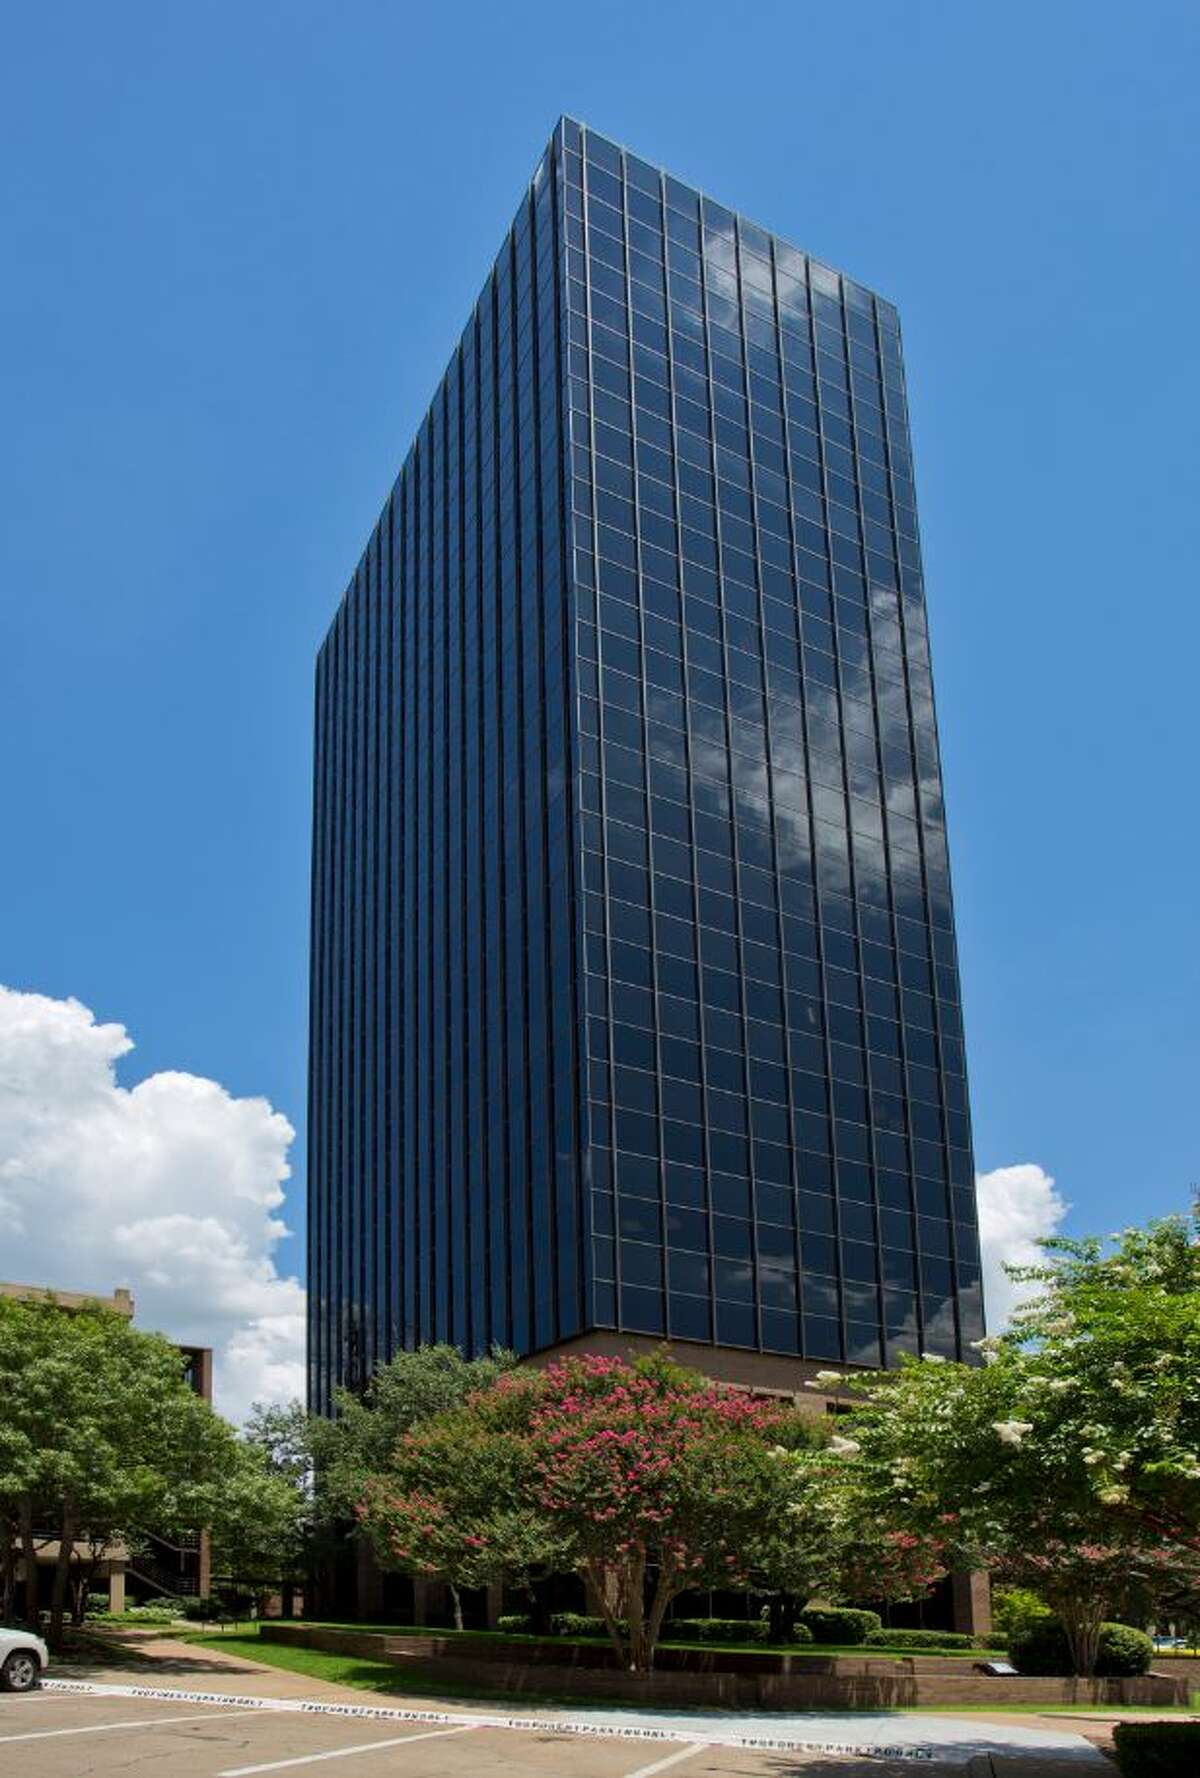 Hartman Short Term Income Properties XX, Inc., has purchased the Three Forest Plaza office tower in the Park Central area of Dallas.